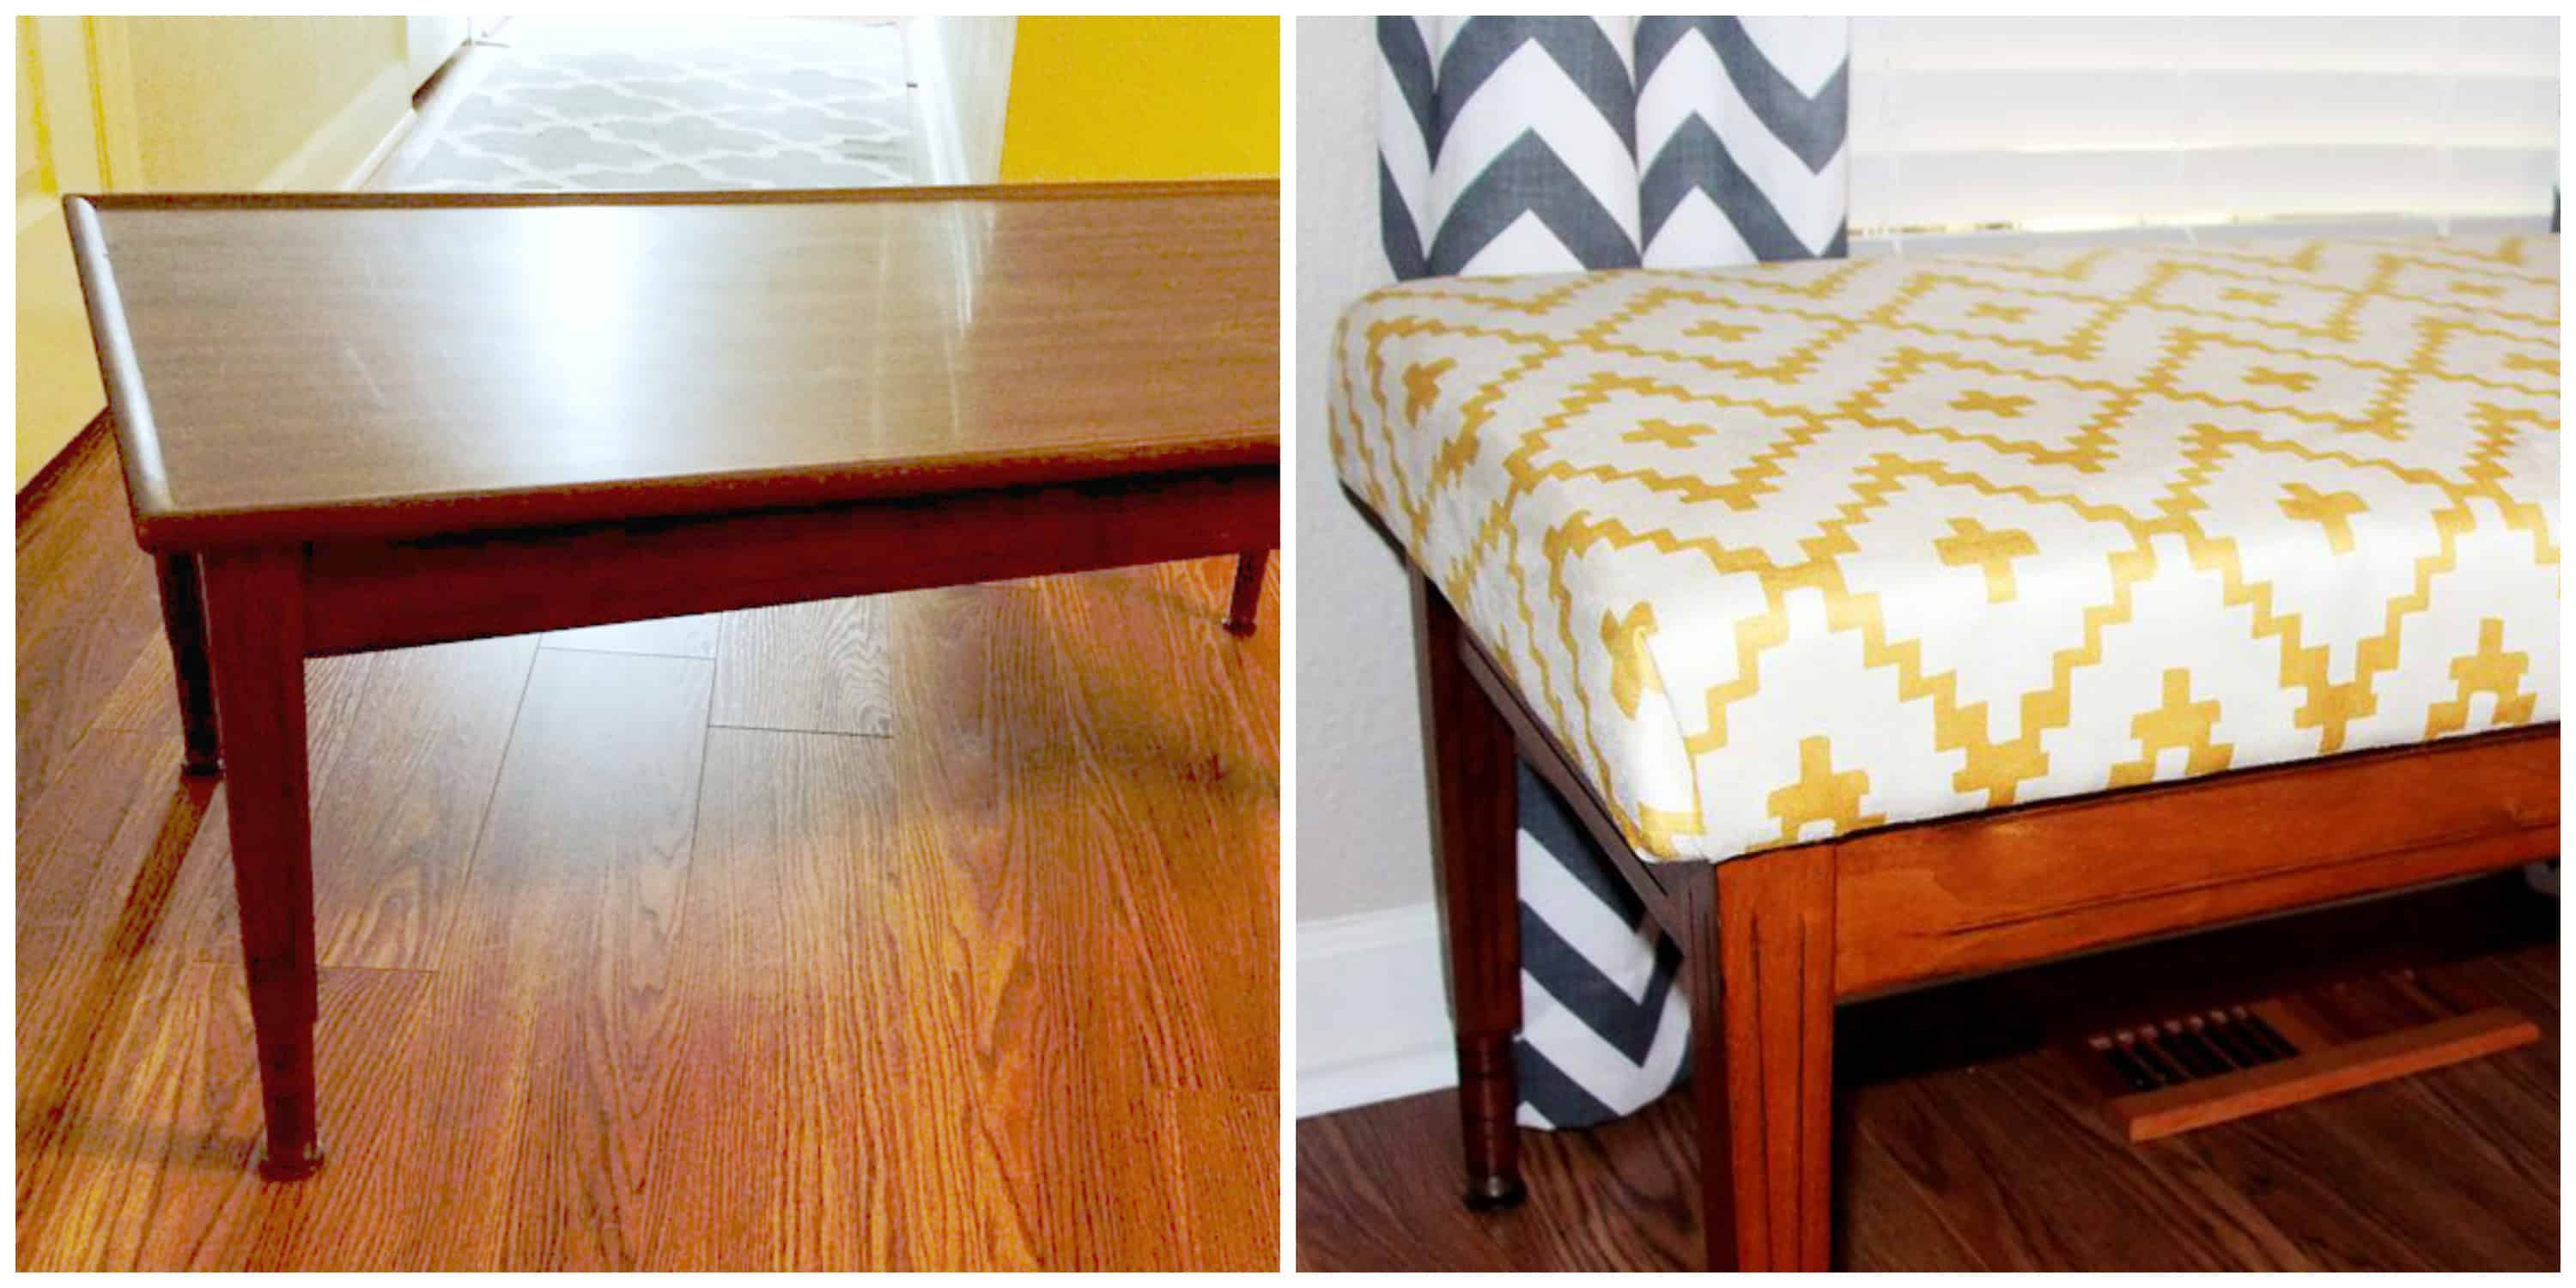 Coffee Table Into A Bench Diy Turn A Coffee Table Into An Upholstered Bench Spoonflower Blog